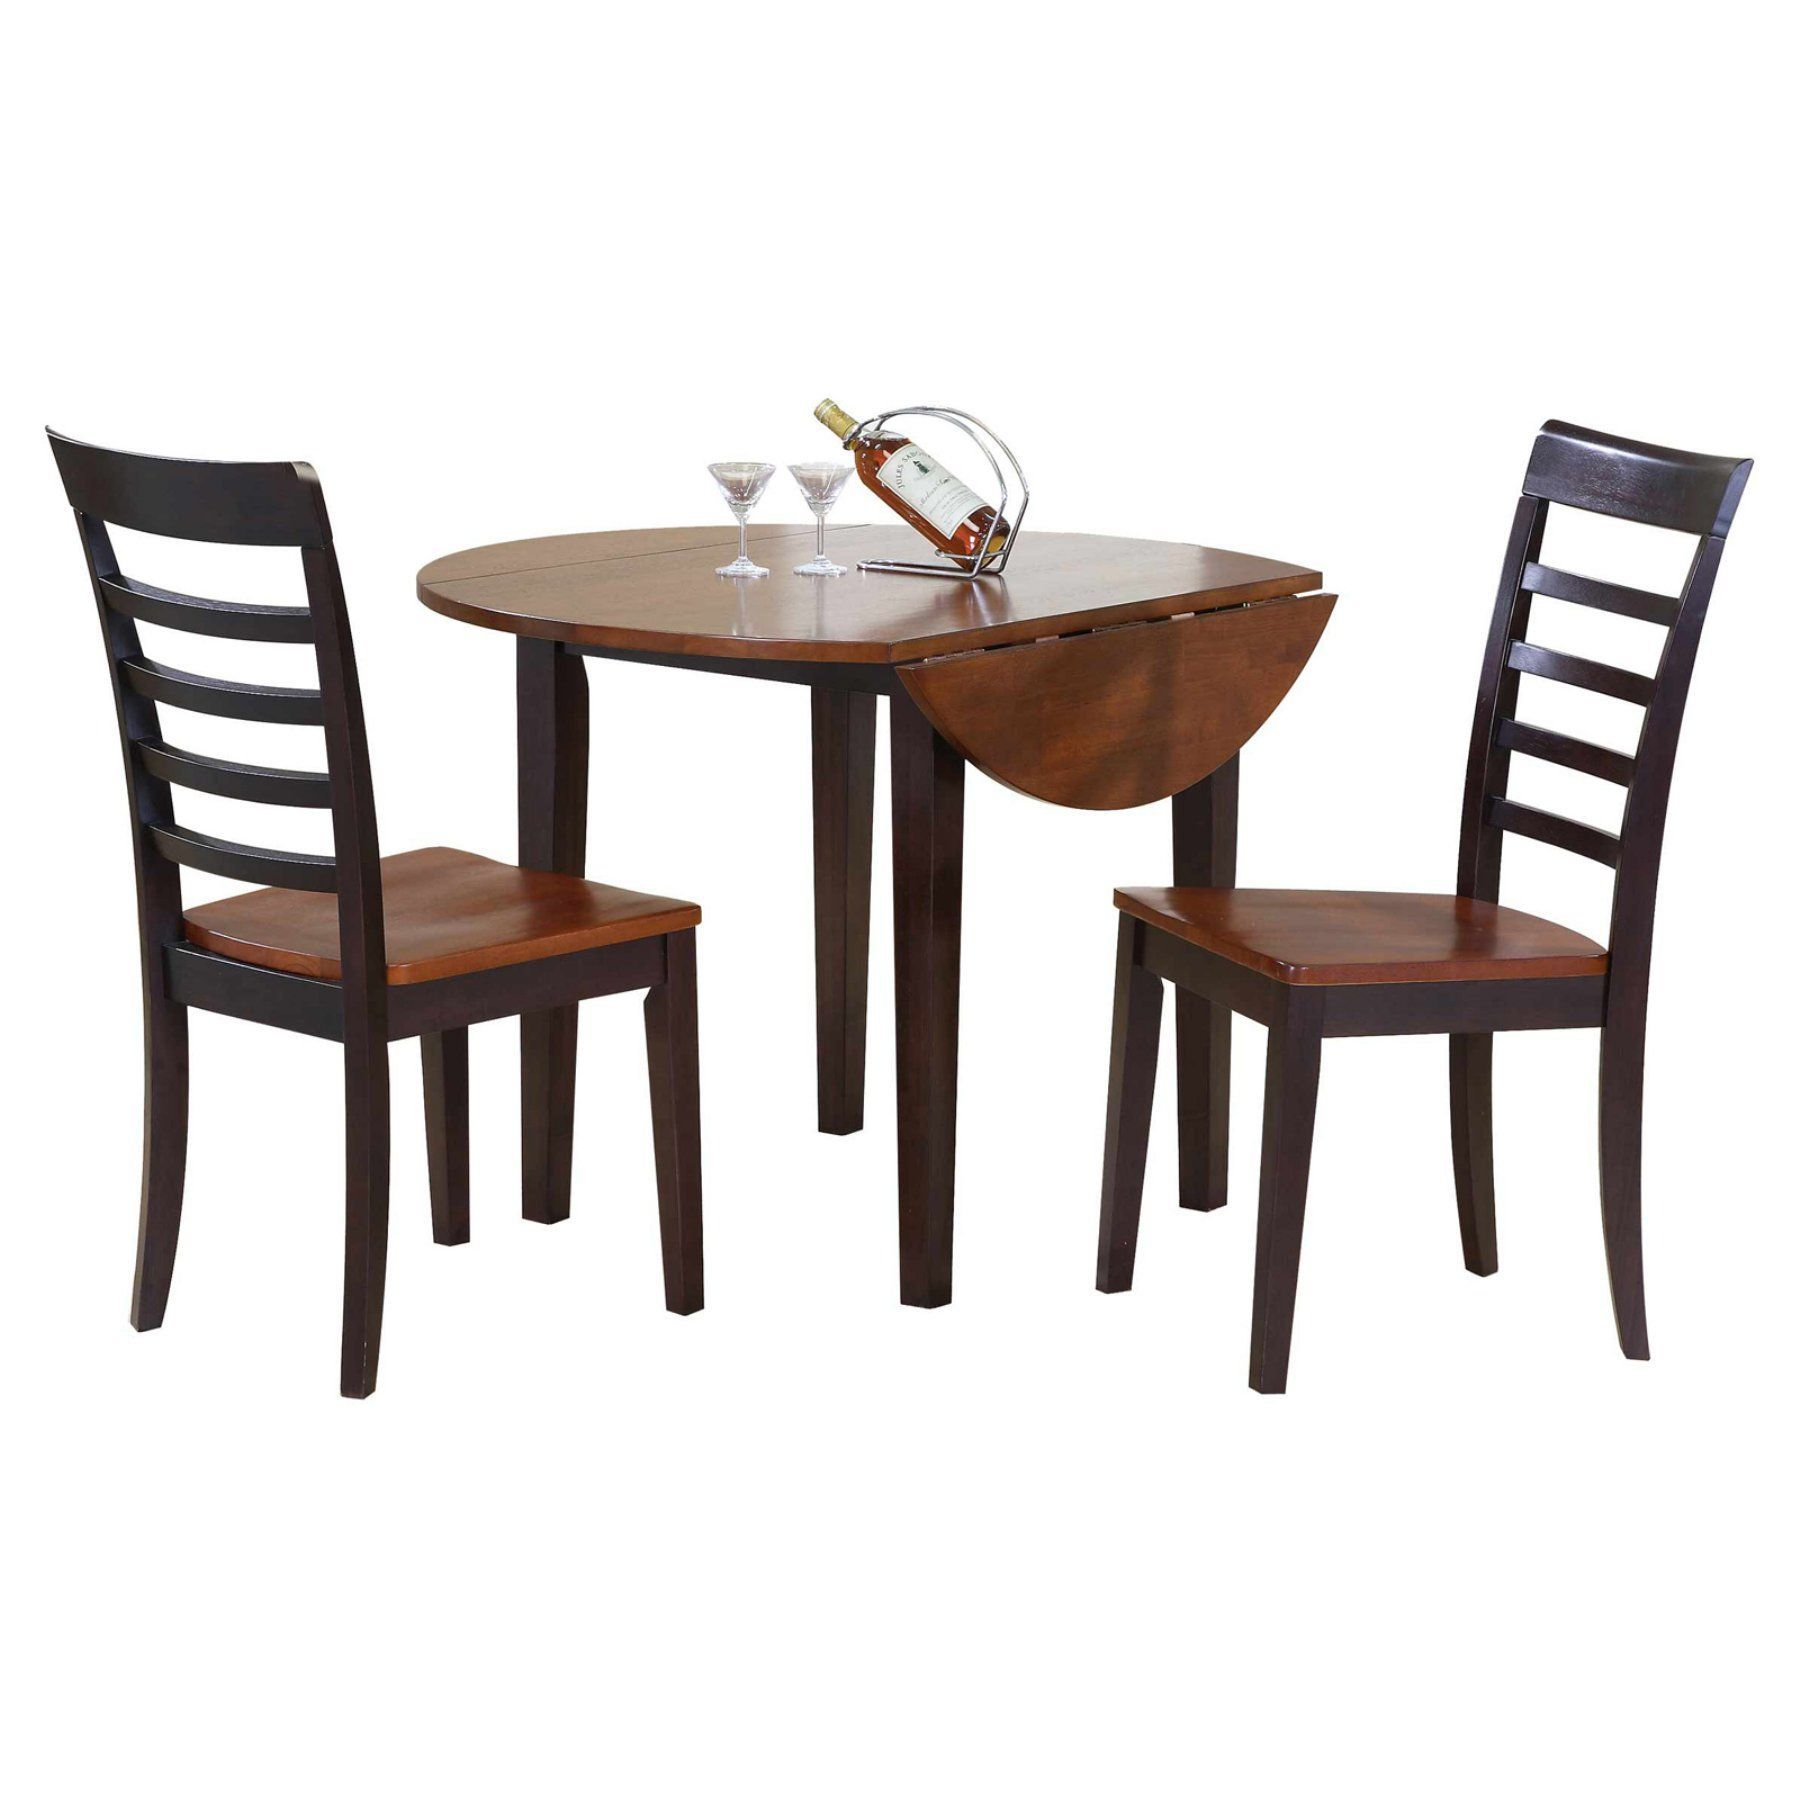 Winners Only Contemporary Farmhouse 3 Piece Dining Table Set Fascinating Three Piece Dining Room Set Design Inspiration